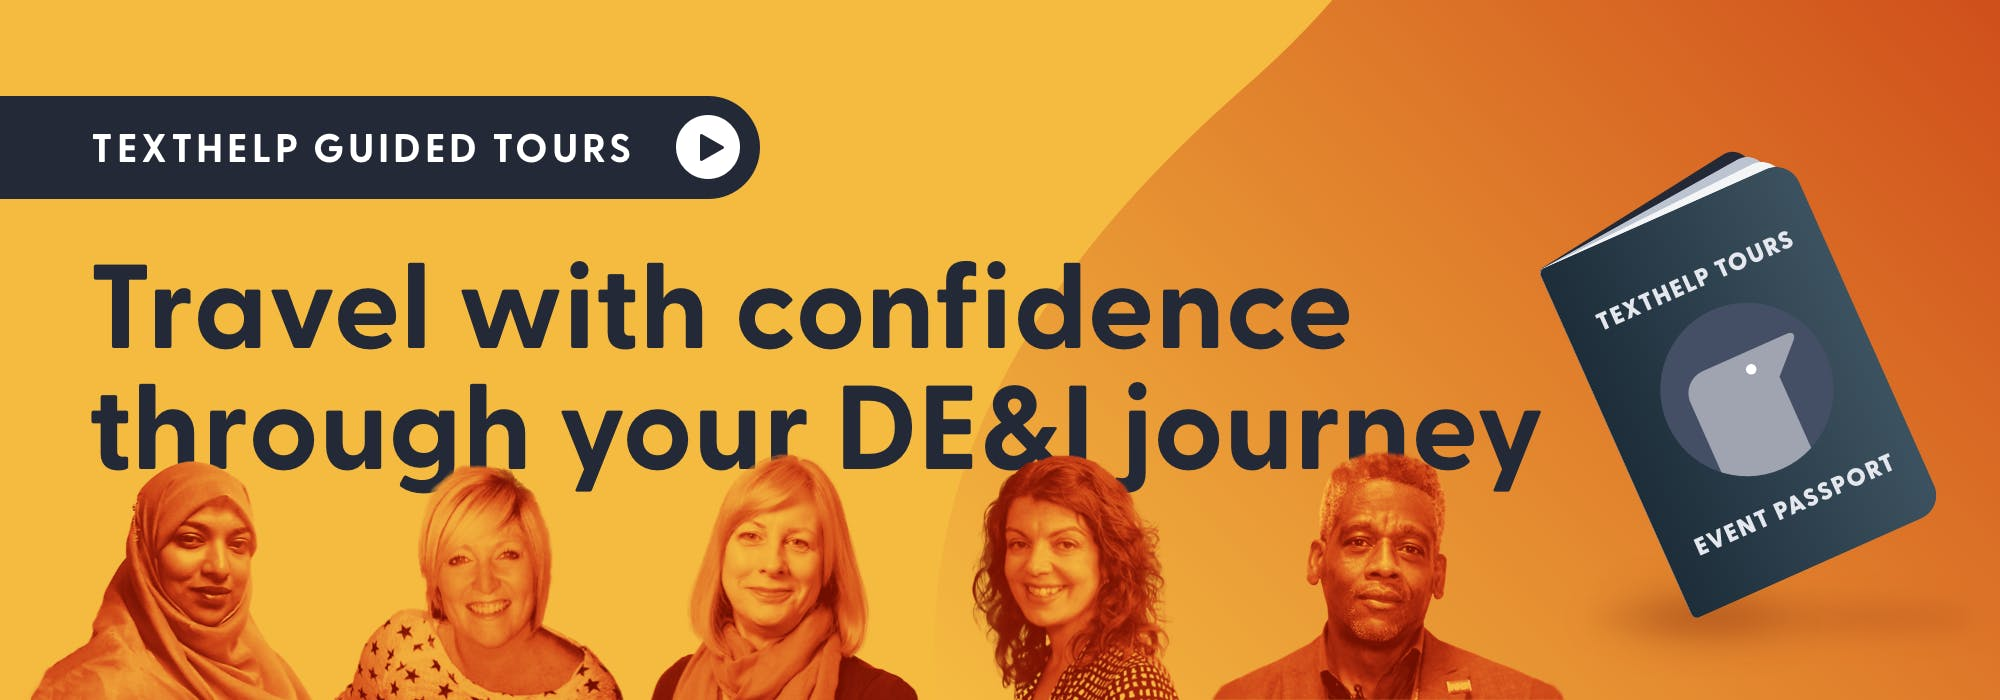 Texthelp Guided Tours. Roundtable discussion. Travel with confidence through your DE&I journey.